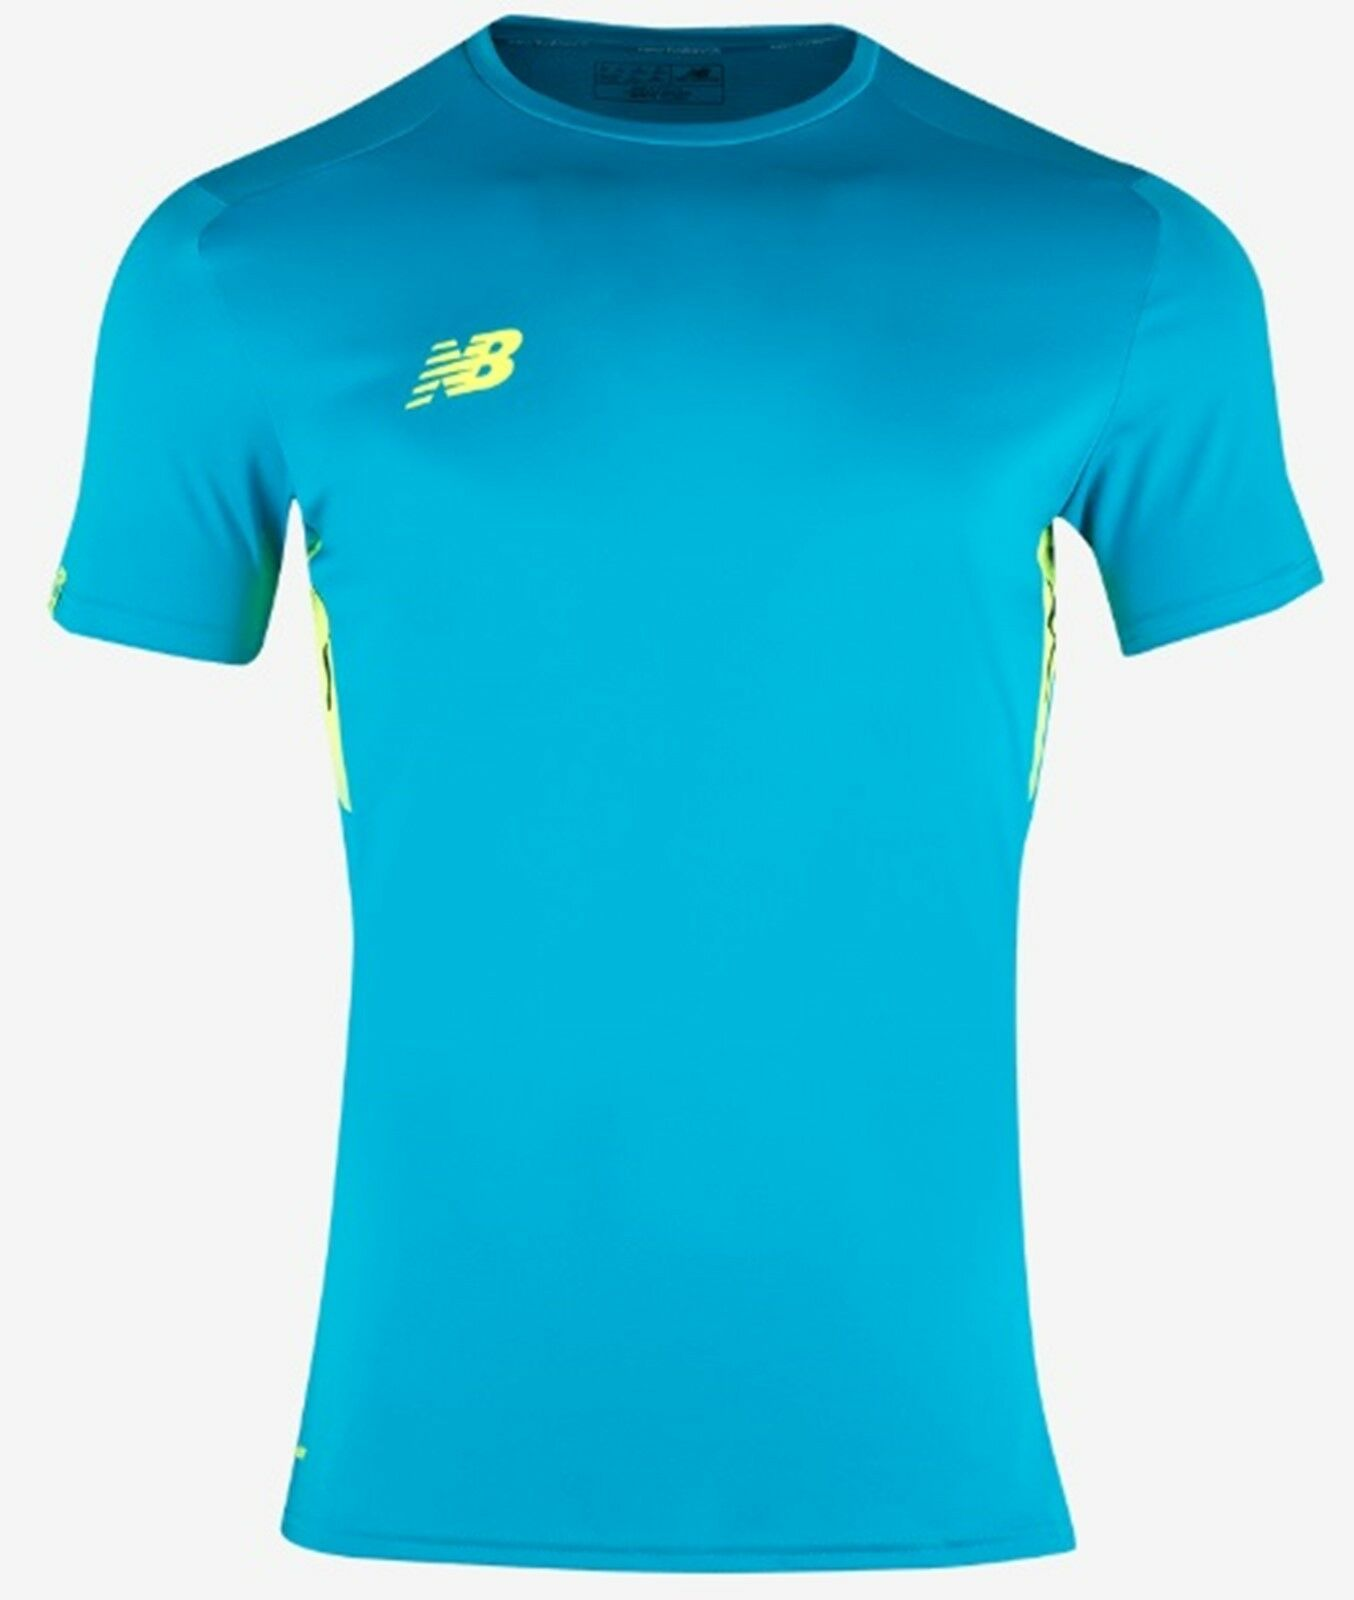 New Balance Men Elite Tech Tee Shirts Athletic bluee Top Tee GYM Jersey 8BA54150